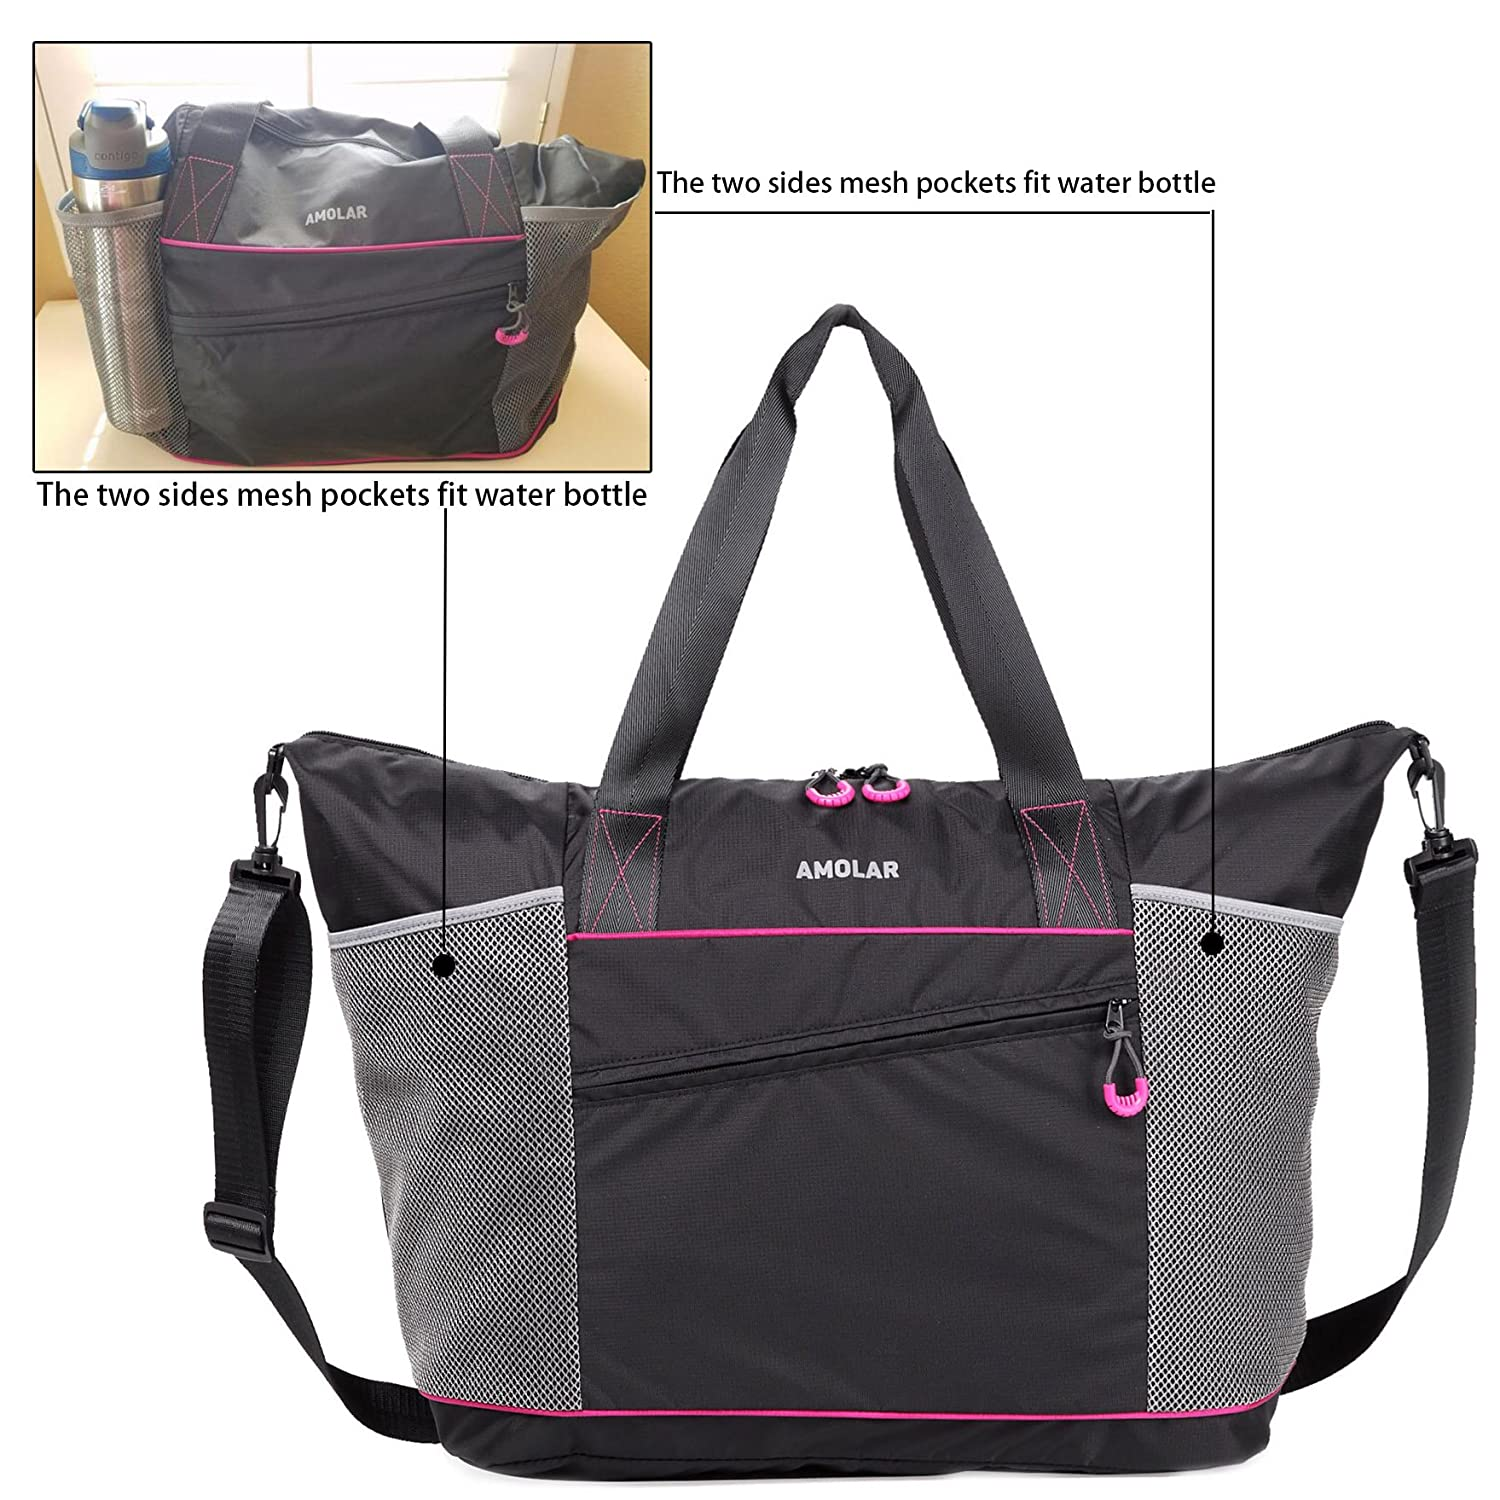 ed7e604c037a Amazon.com  Gym Tote Bag with Roomy Pockets Best for Women  1 Top  Recommended Rave Reviews  AMOLAR